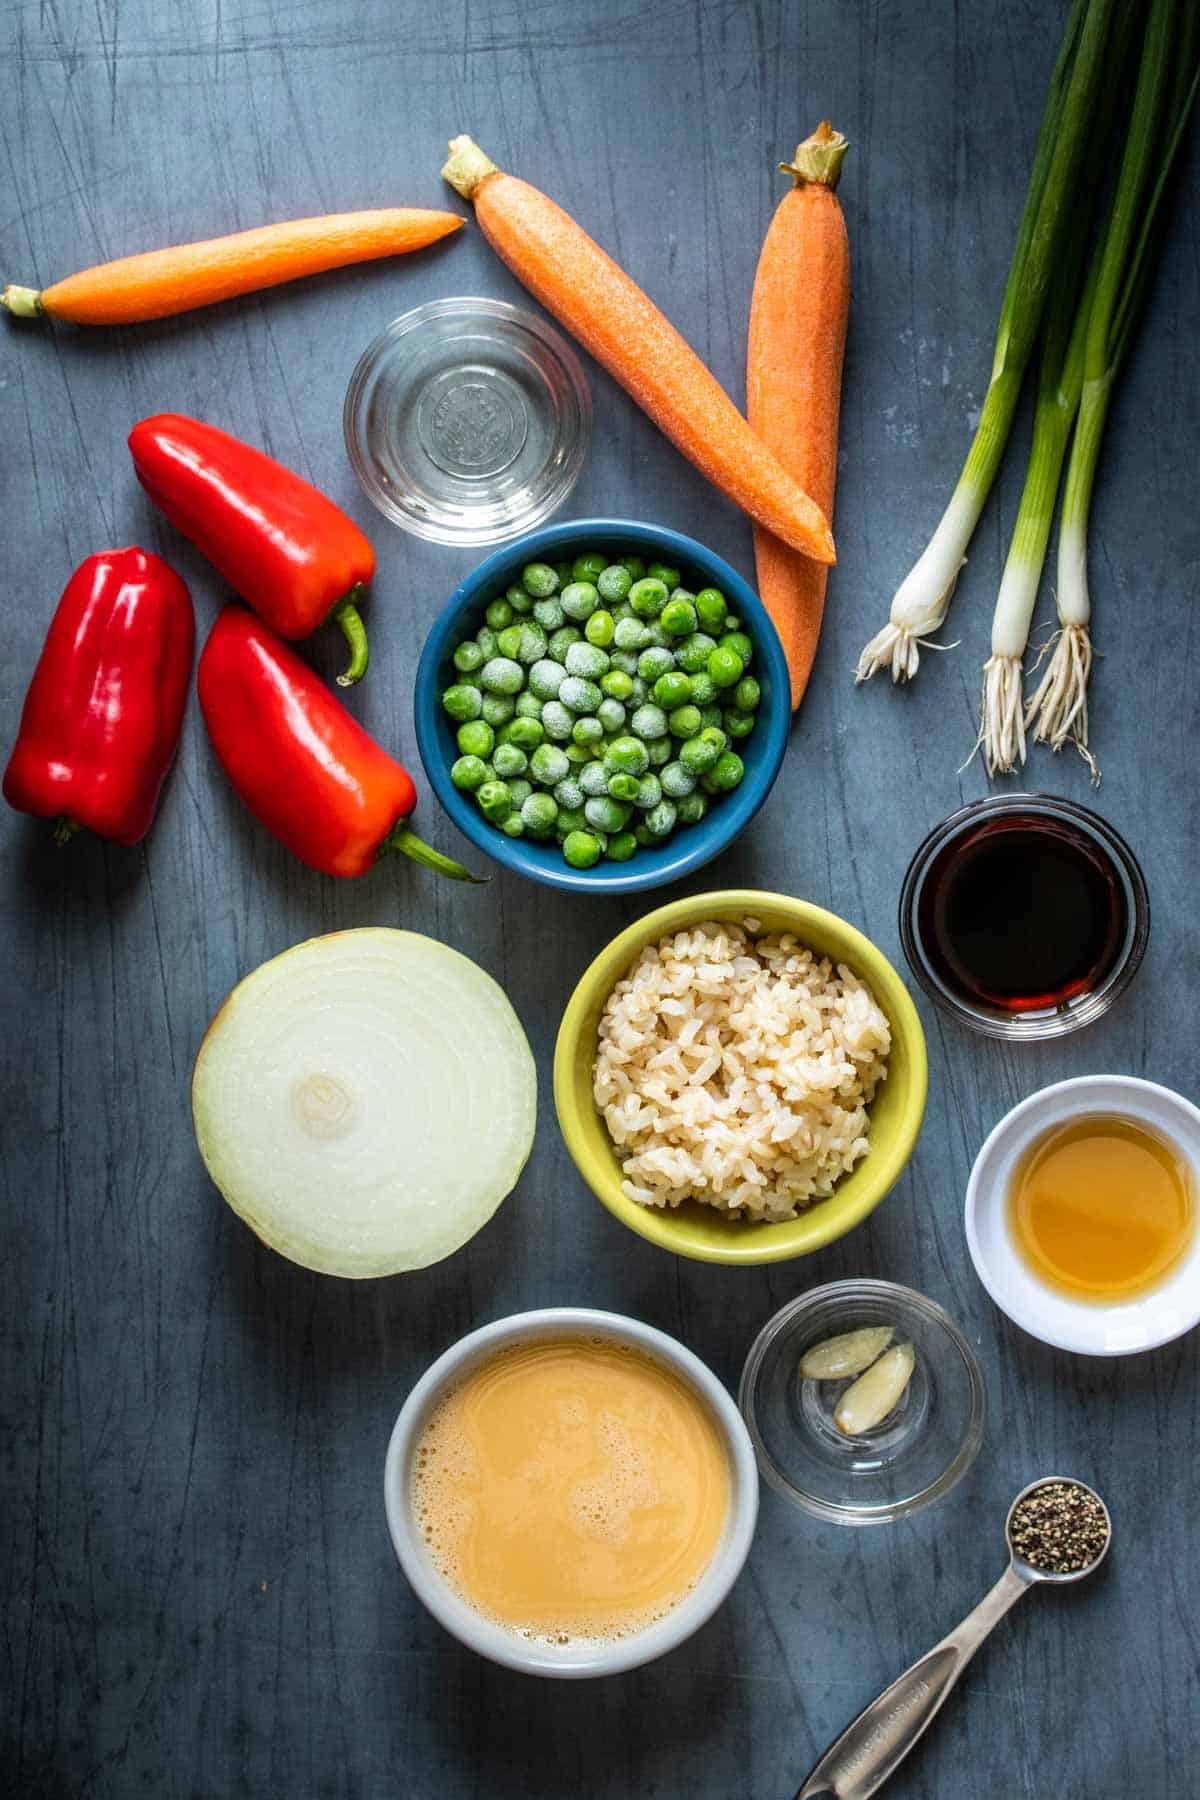 Bowls with ingredients for veggie fried rice on a wooden table